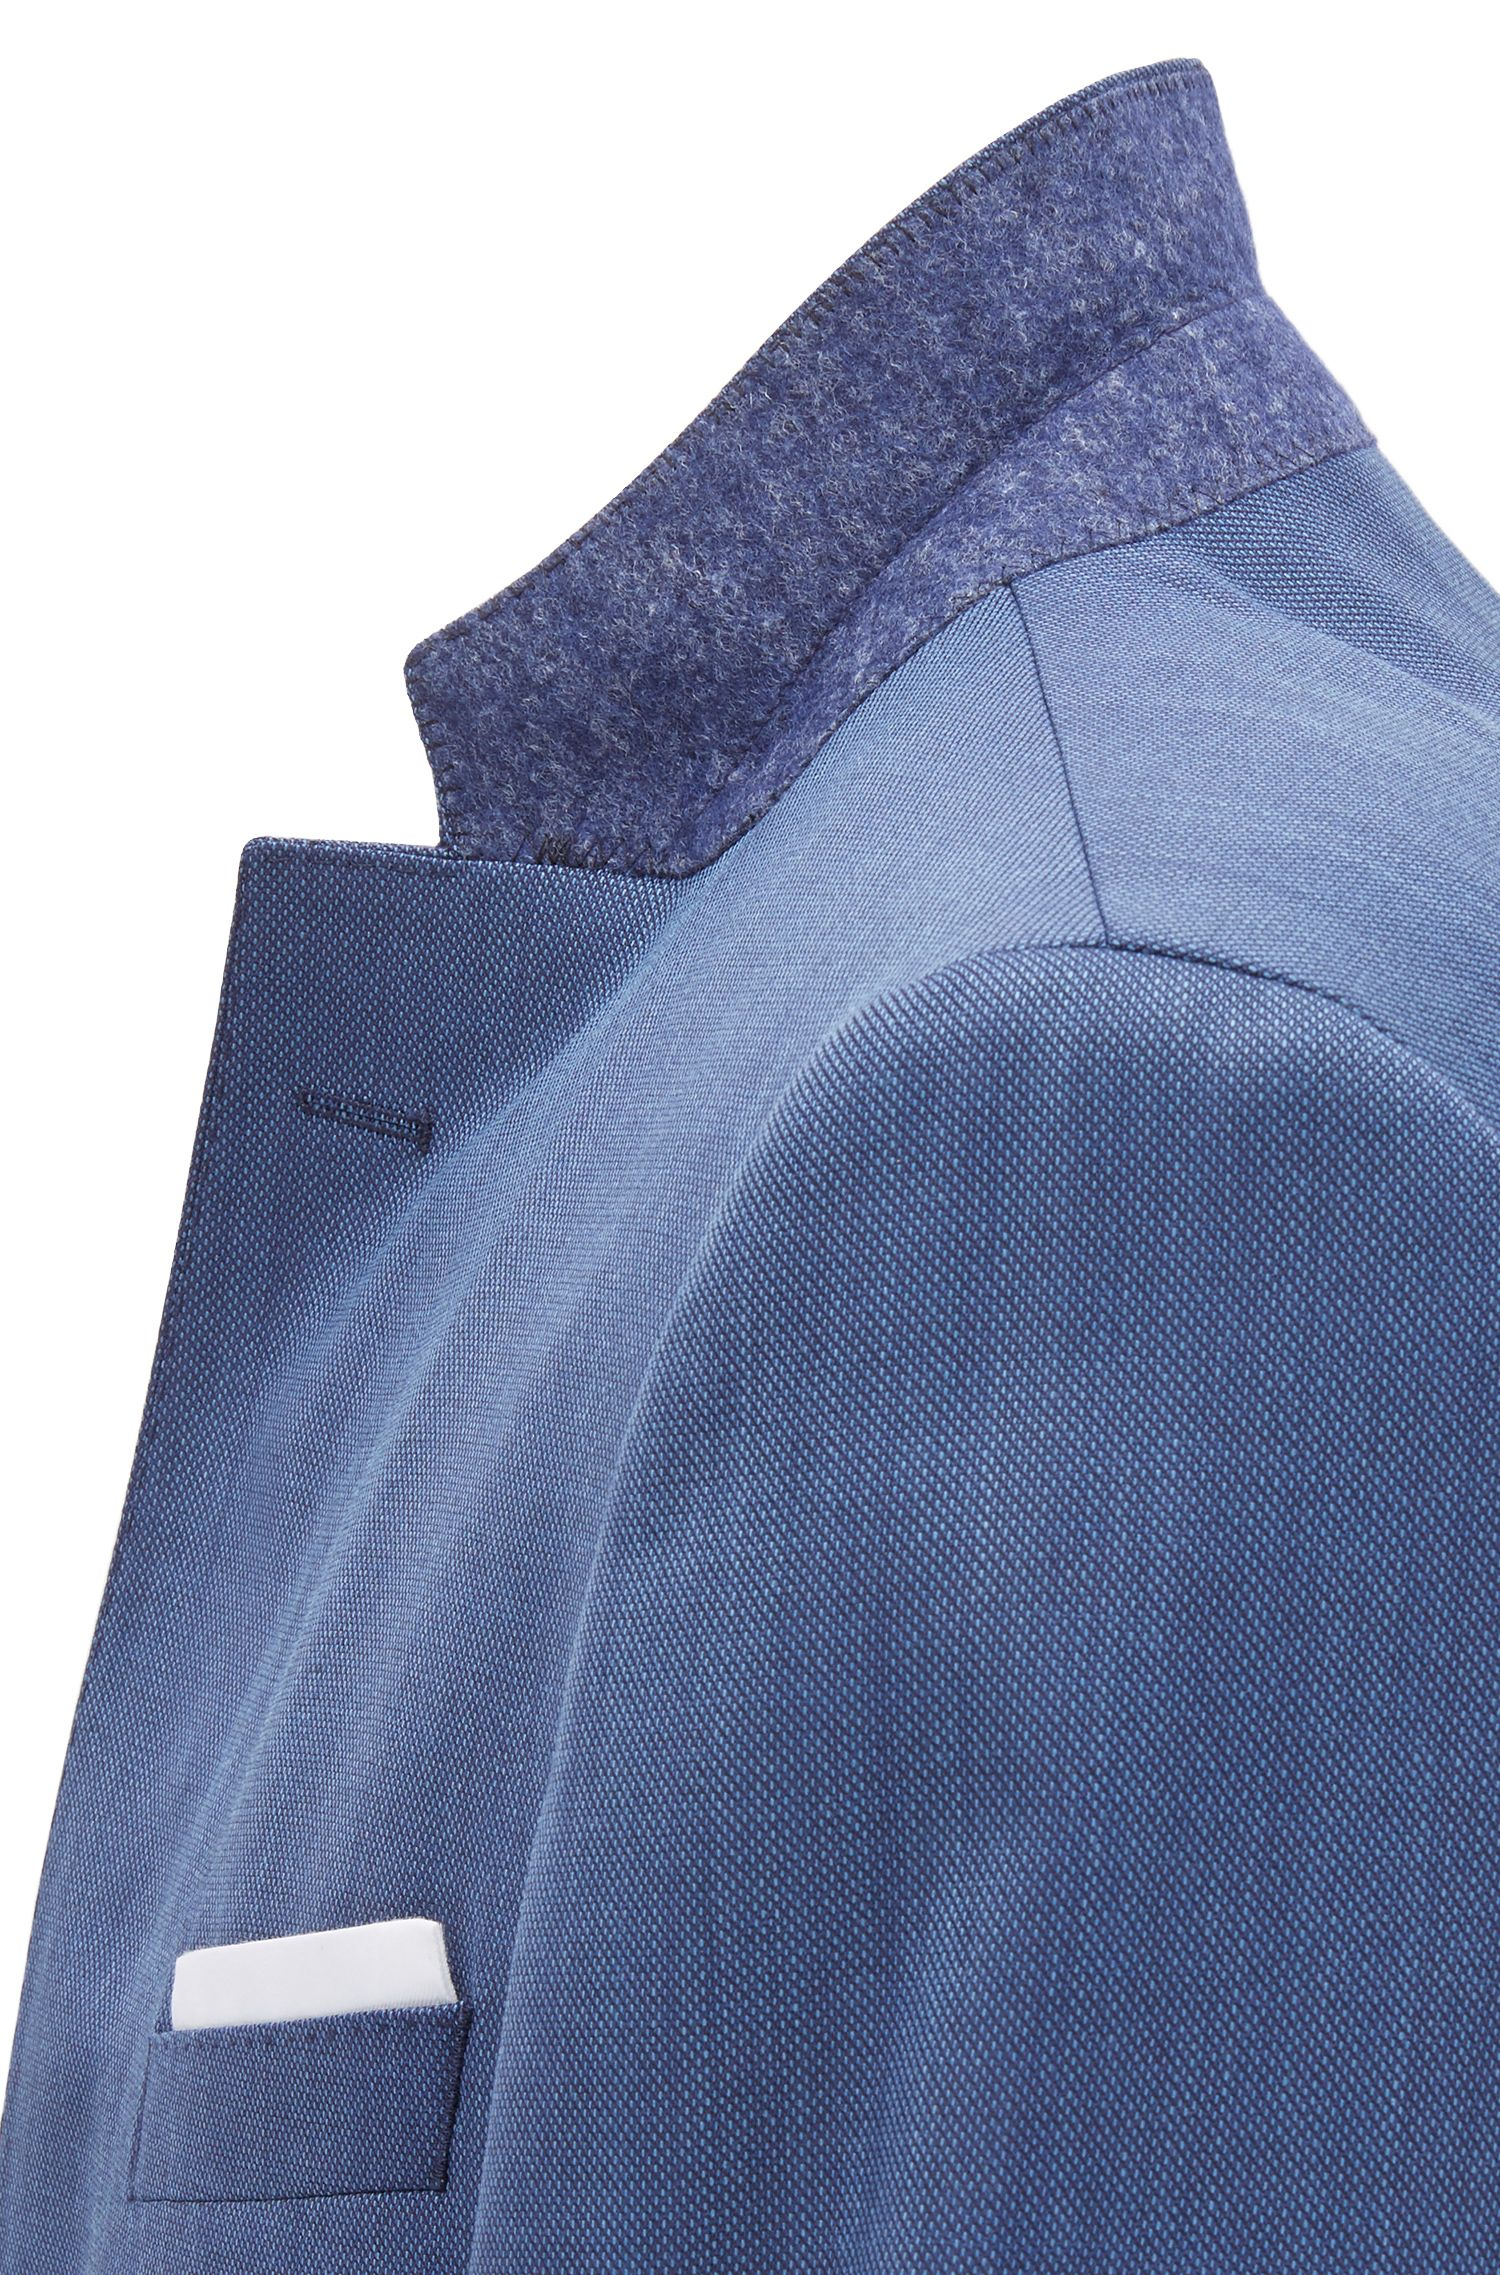 Nailhead Virgin Wool Suit, Slim Fit | Hutson/Gander